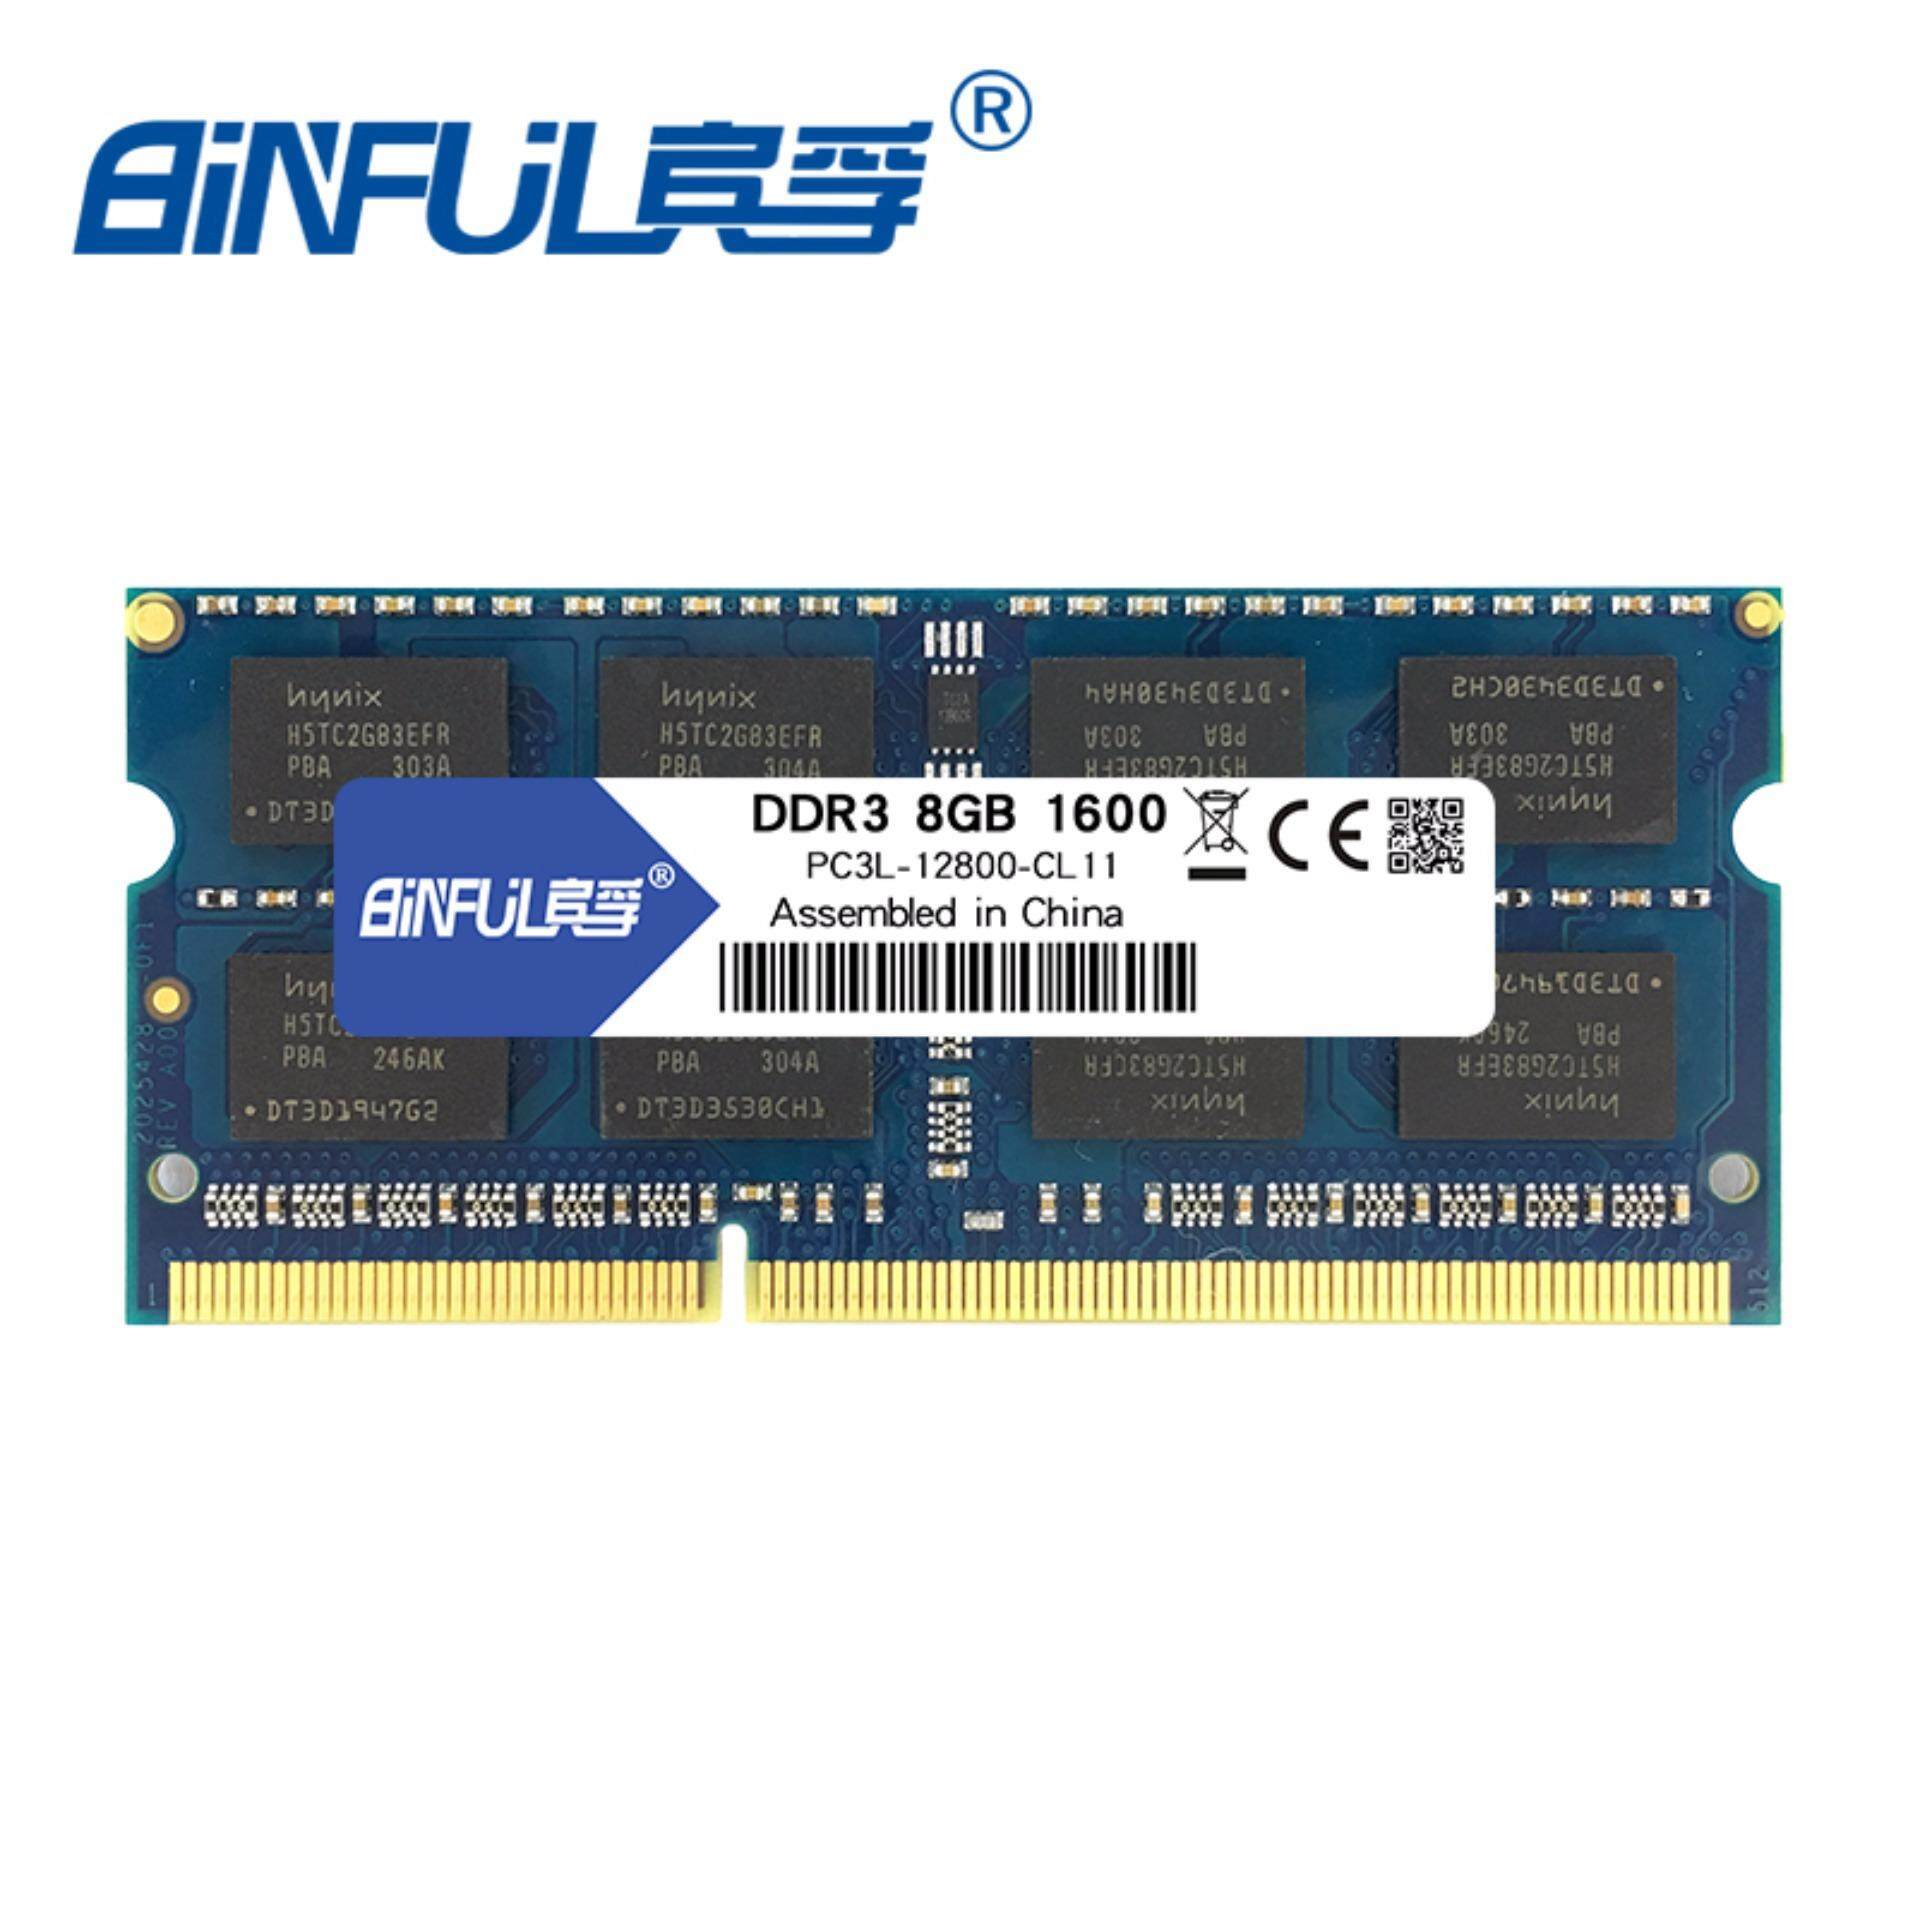 Sale Binful New Brand Ddr3L8Gb 1600Mhz Pc3L 12800 Memoria Ram Low Voltage 1 35V For Laptop Computer Notebook Sodimm Intl